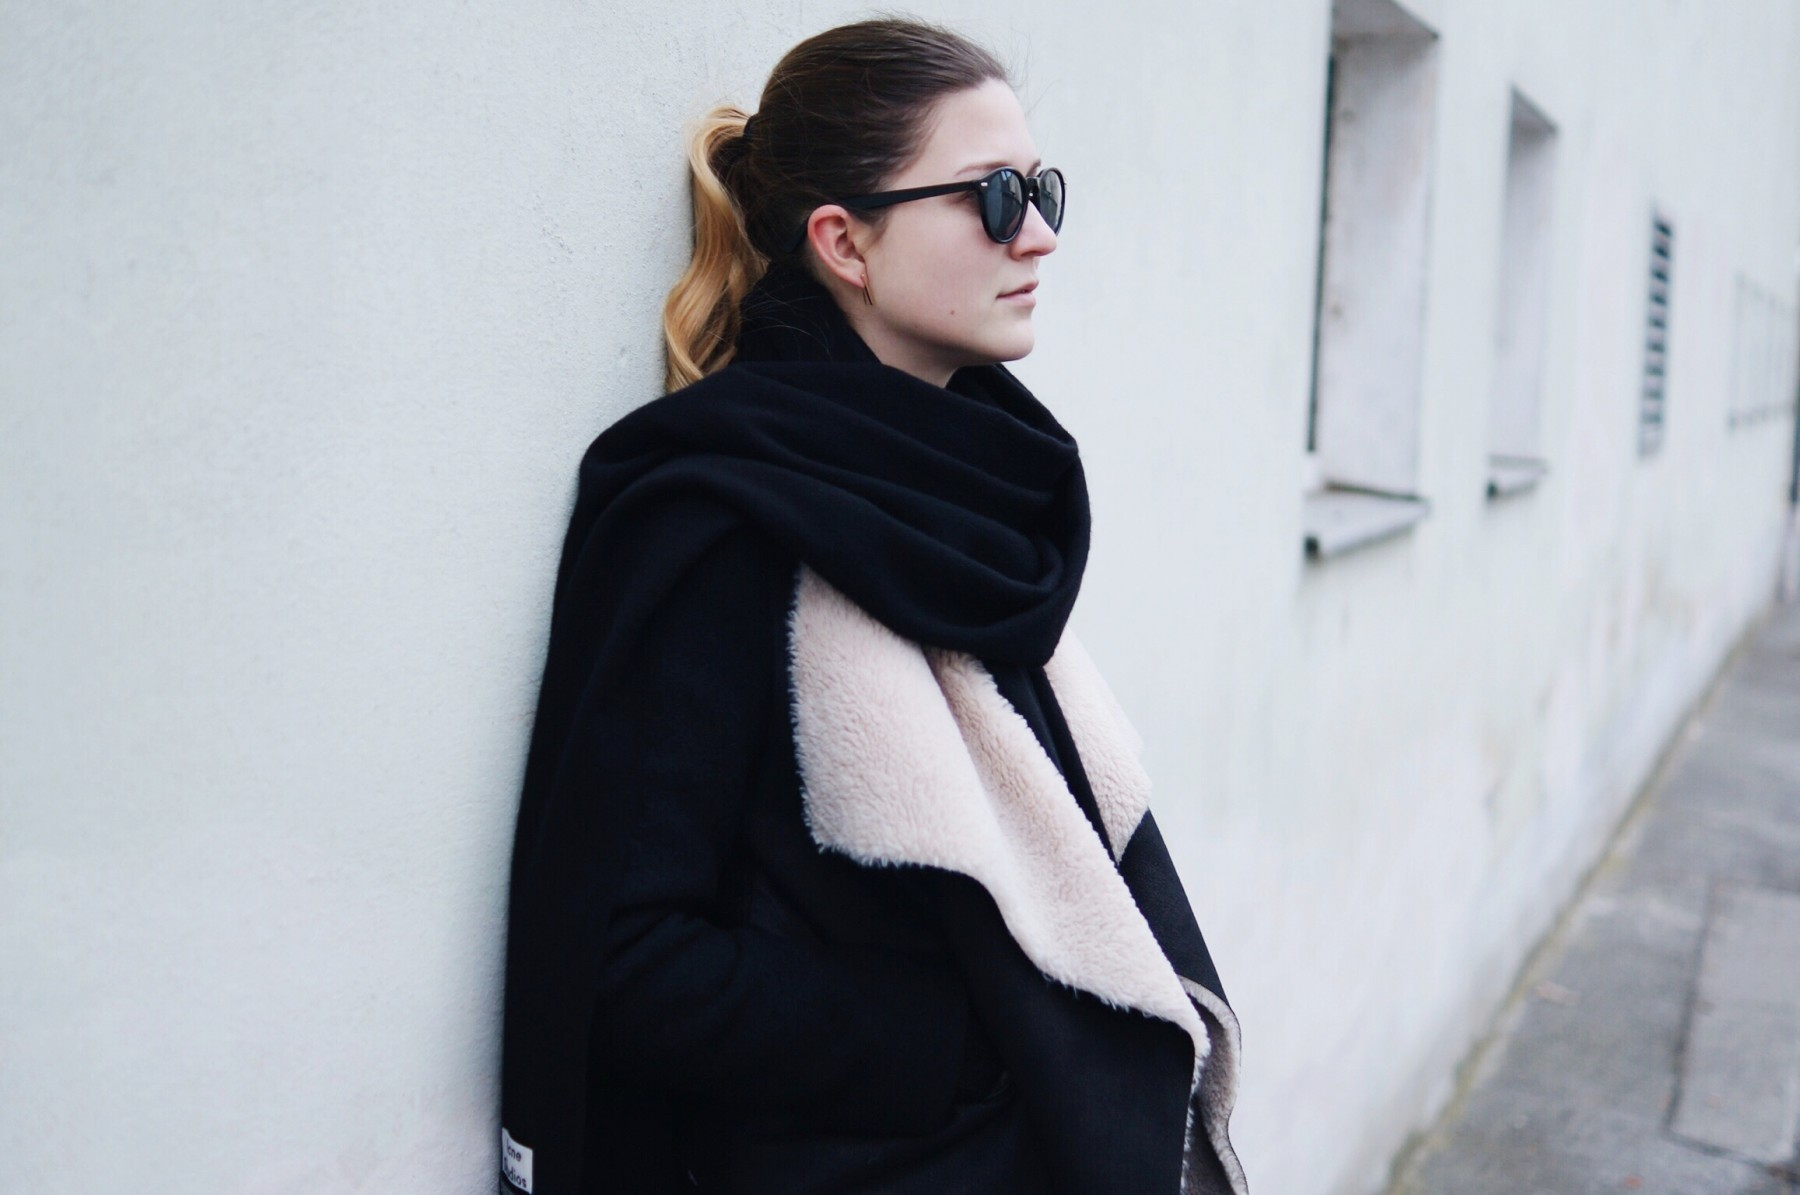 acne_studios_scarf_lambskin_jacket_winter_outfit7